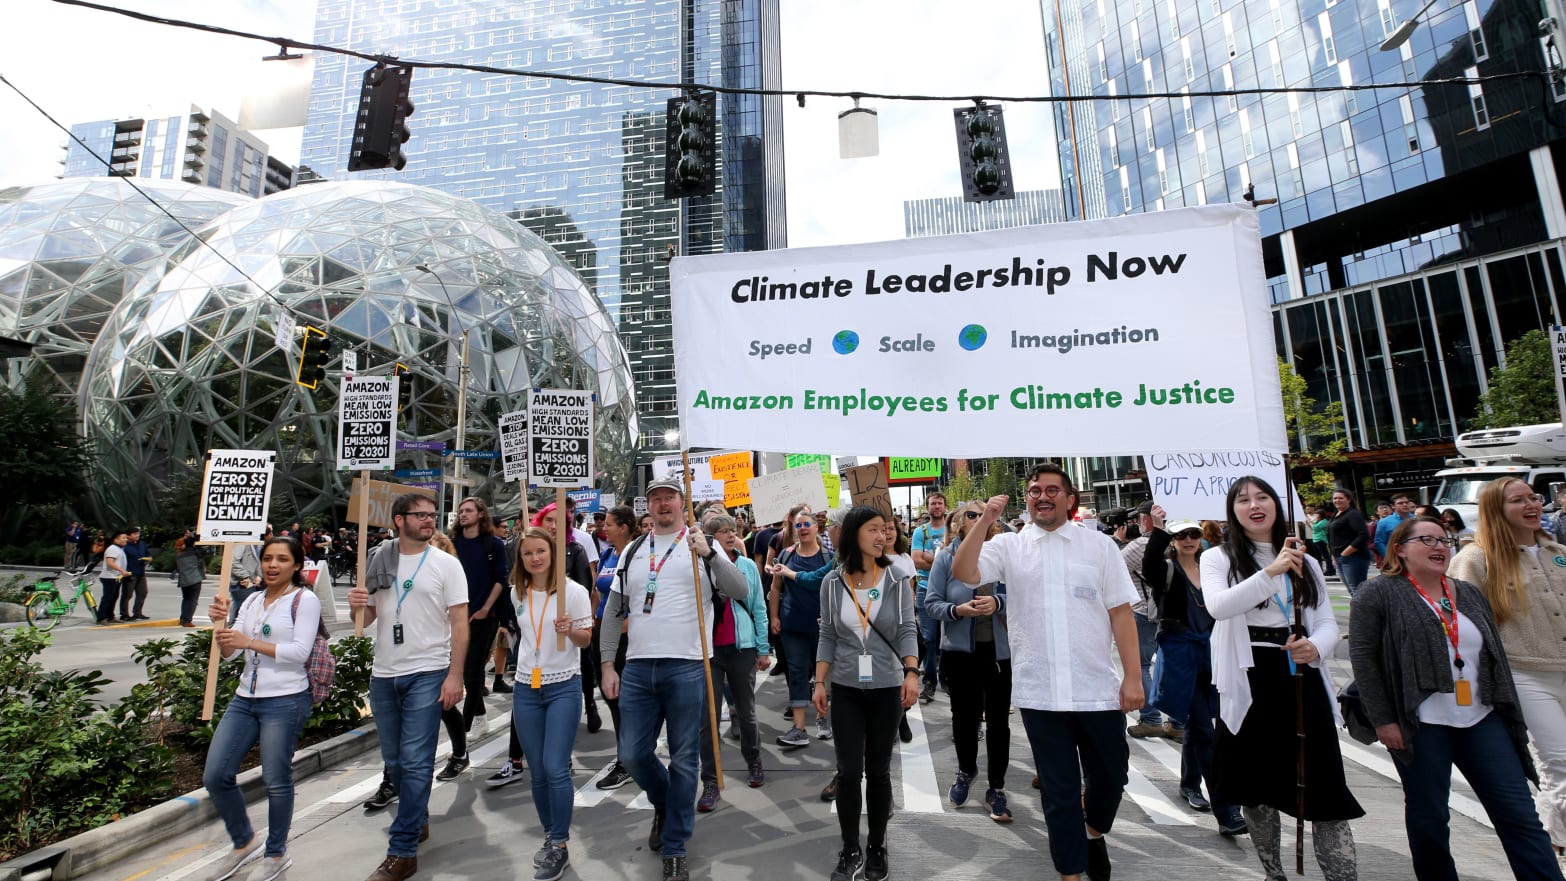 Amazon CEO Jeff Bezos' Climate Pledges Didn't Stop Employees From Taking to the Streets